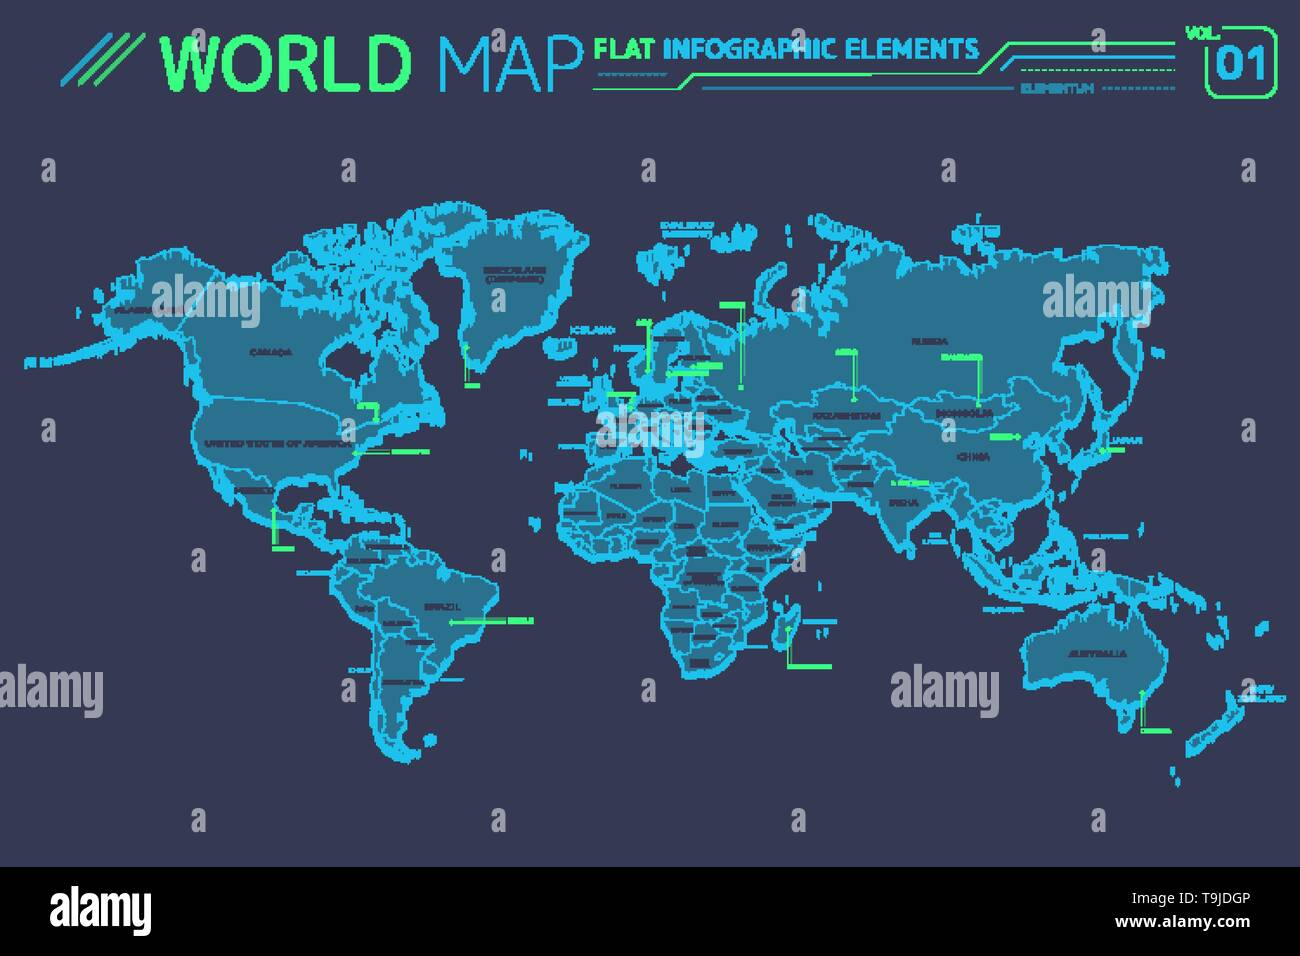 North and South America, Asia, Africa, Europe, Australia and Oceania Vector Maps - Stock Image